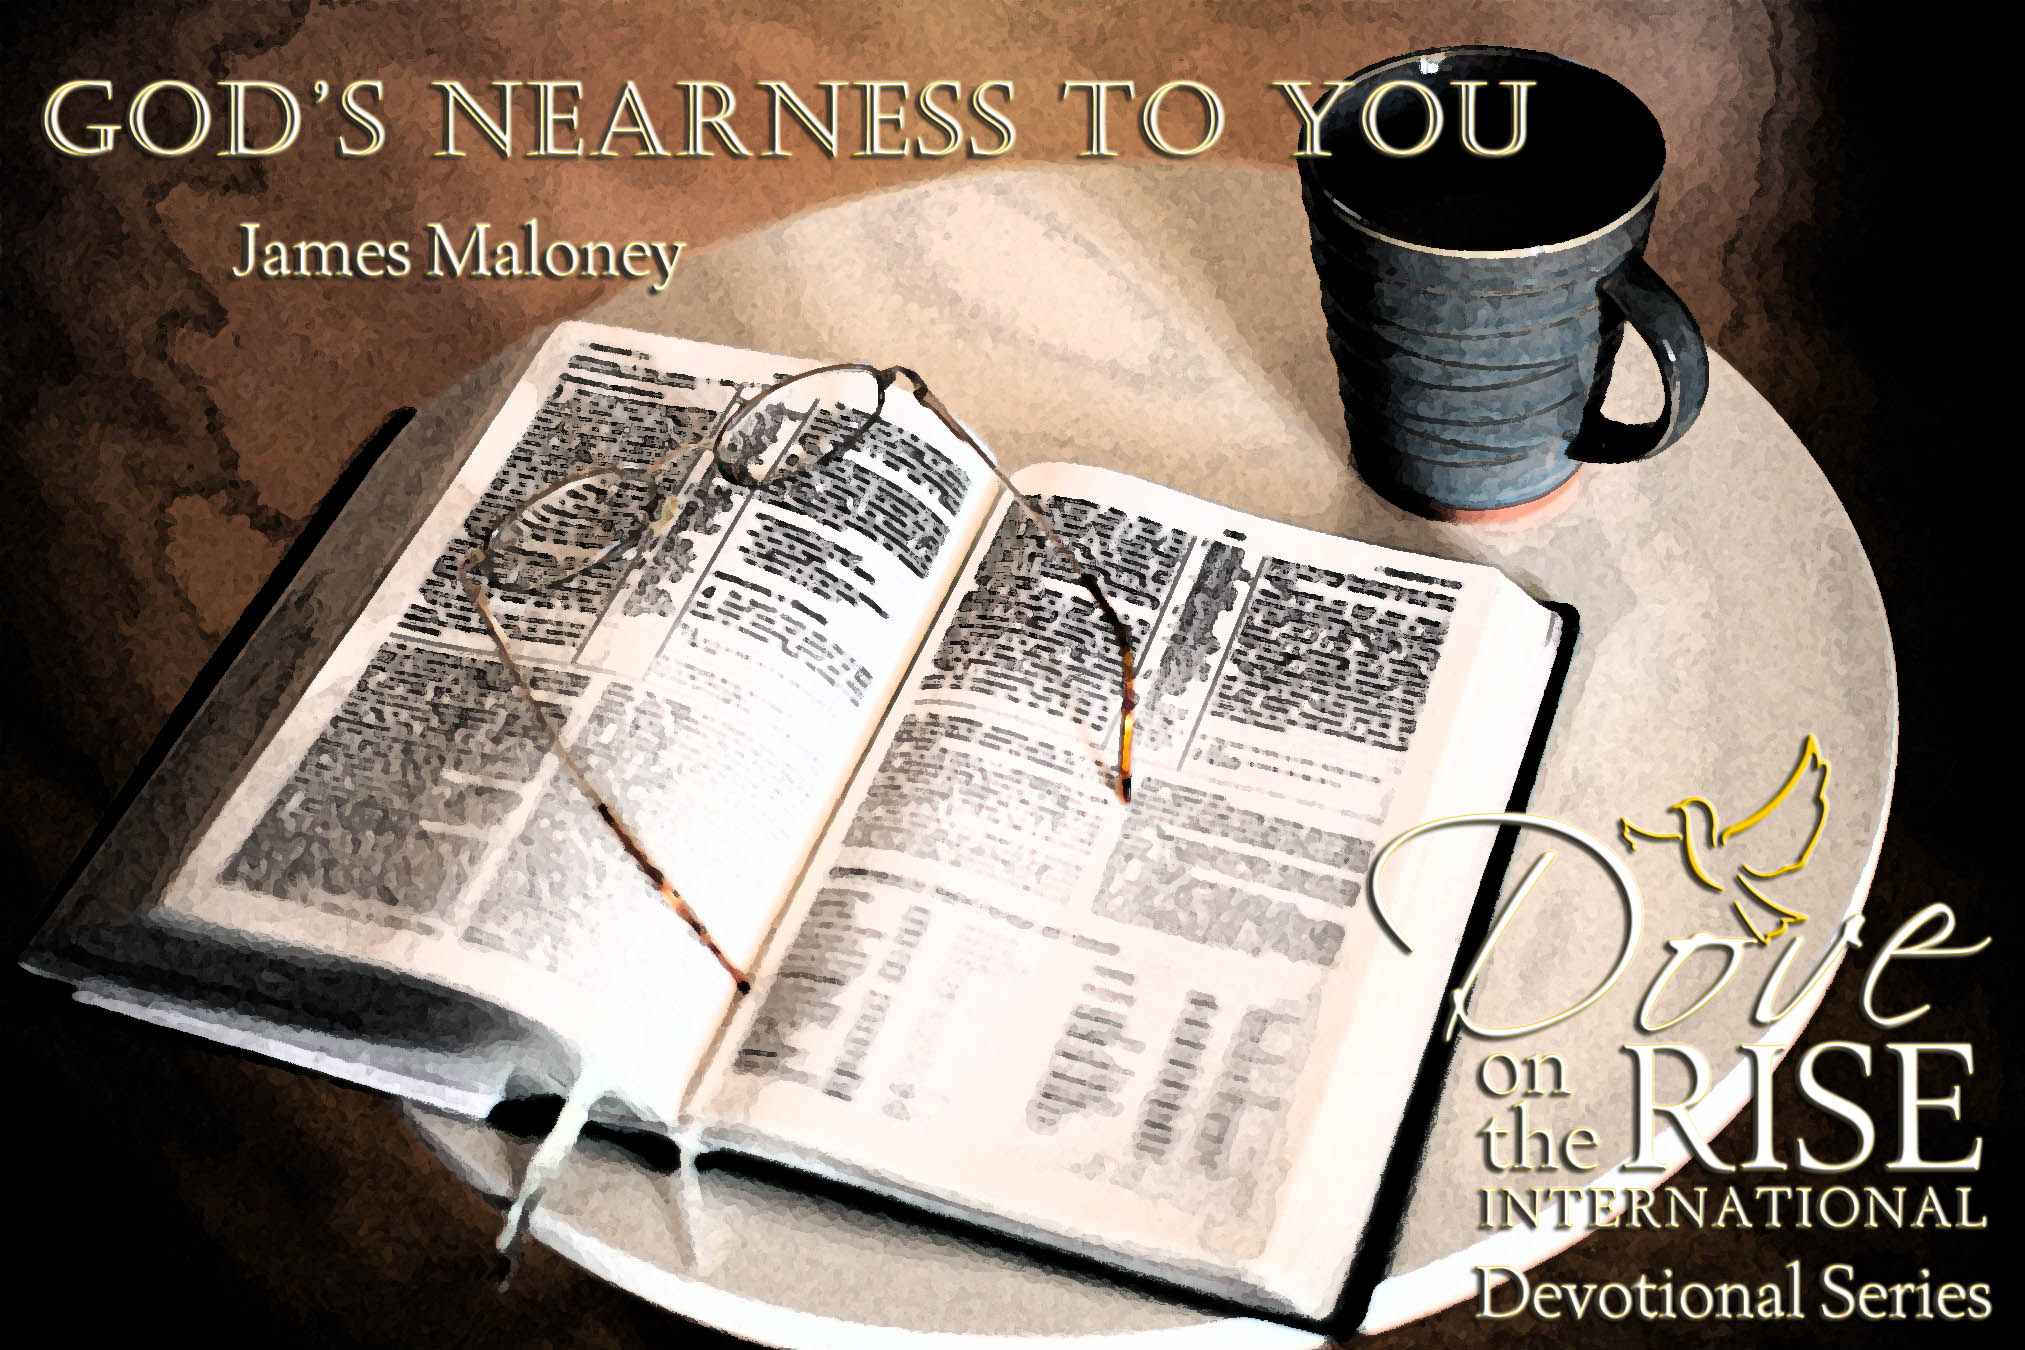 God's Nearness to You (DotR Devotional Series)